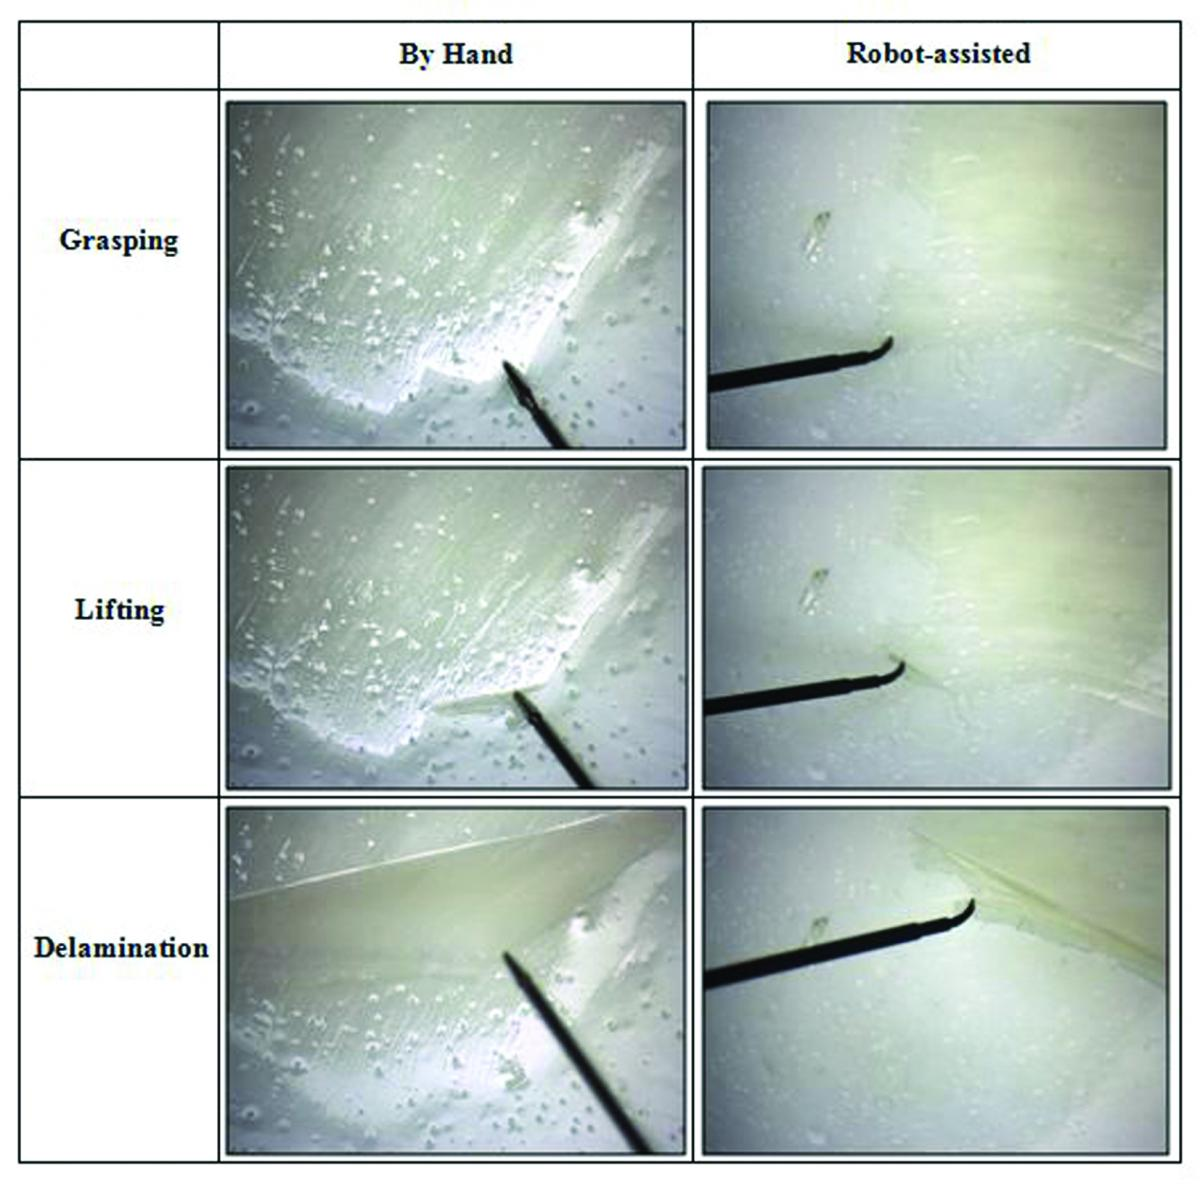 Comparison Of Epiretinal Membrane Removal Both The Hand Held And Robot Assisted Removals Were Successful